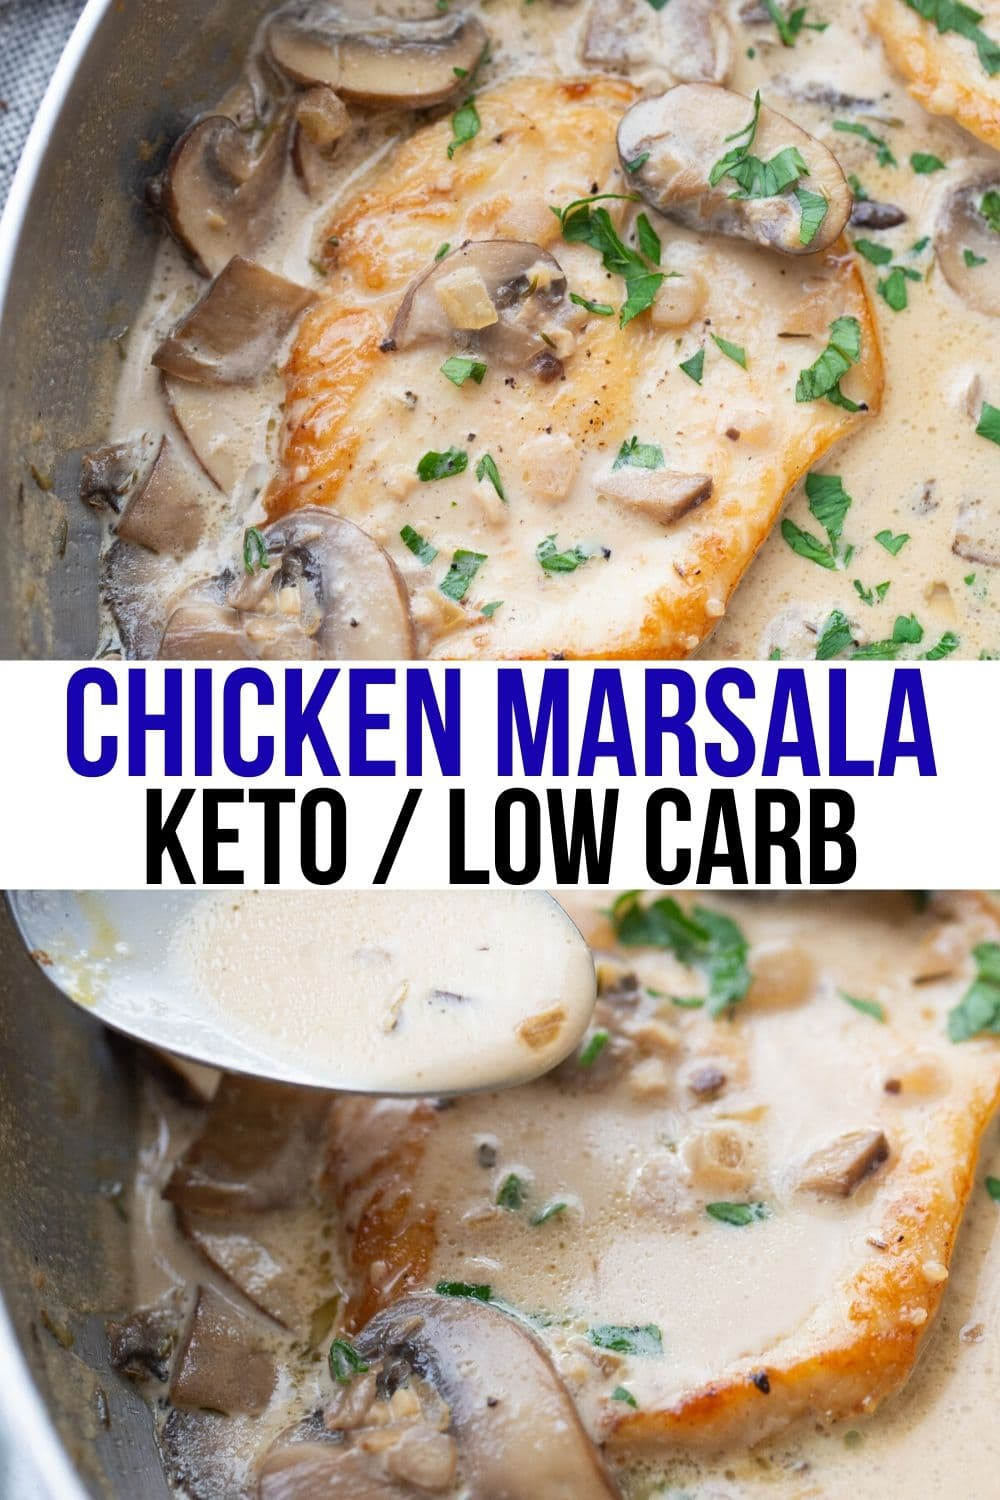 keto chicken marsala in a skillet with cream sauce over top